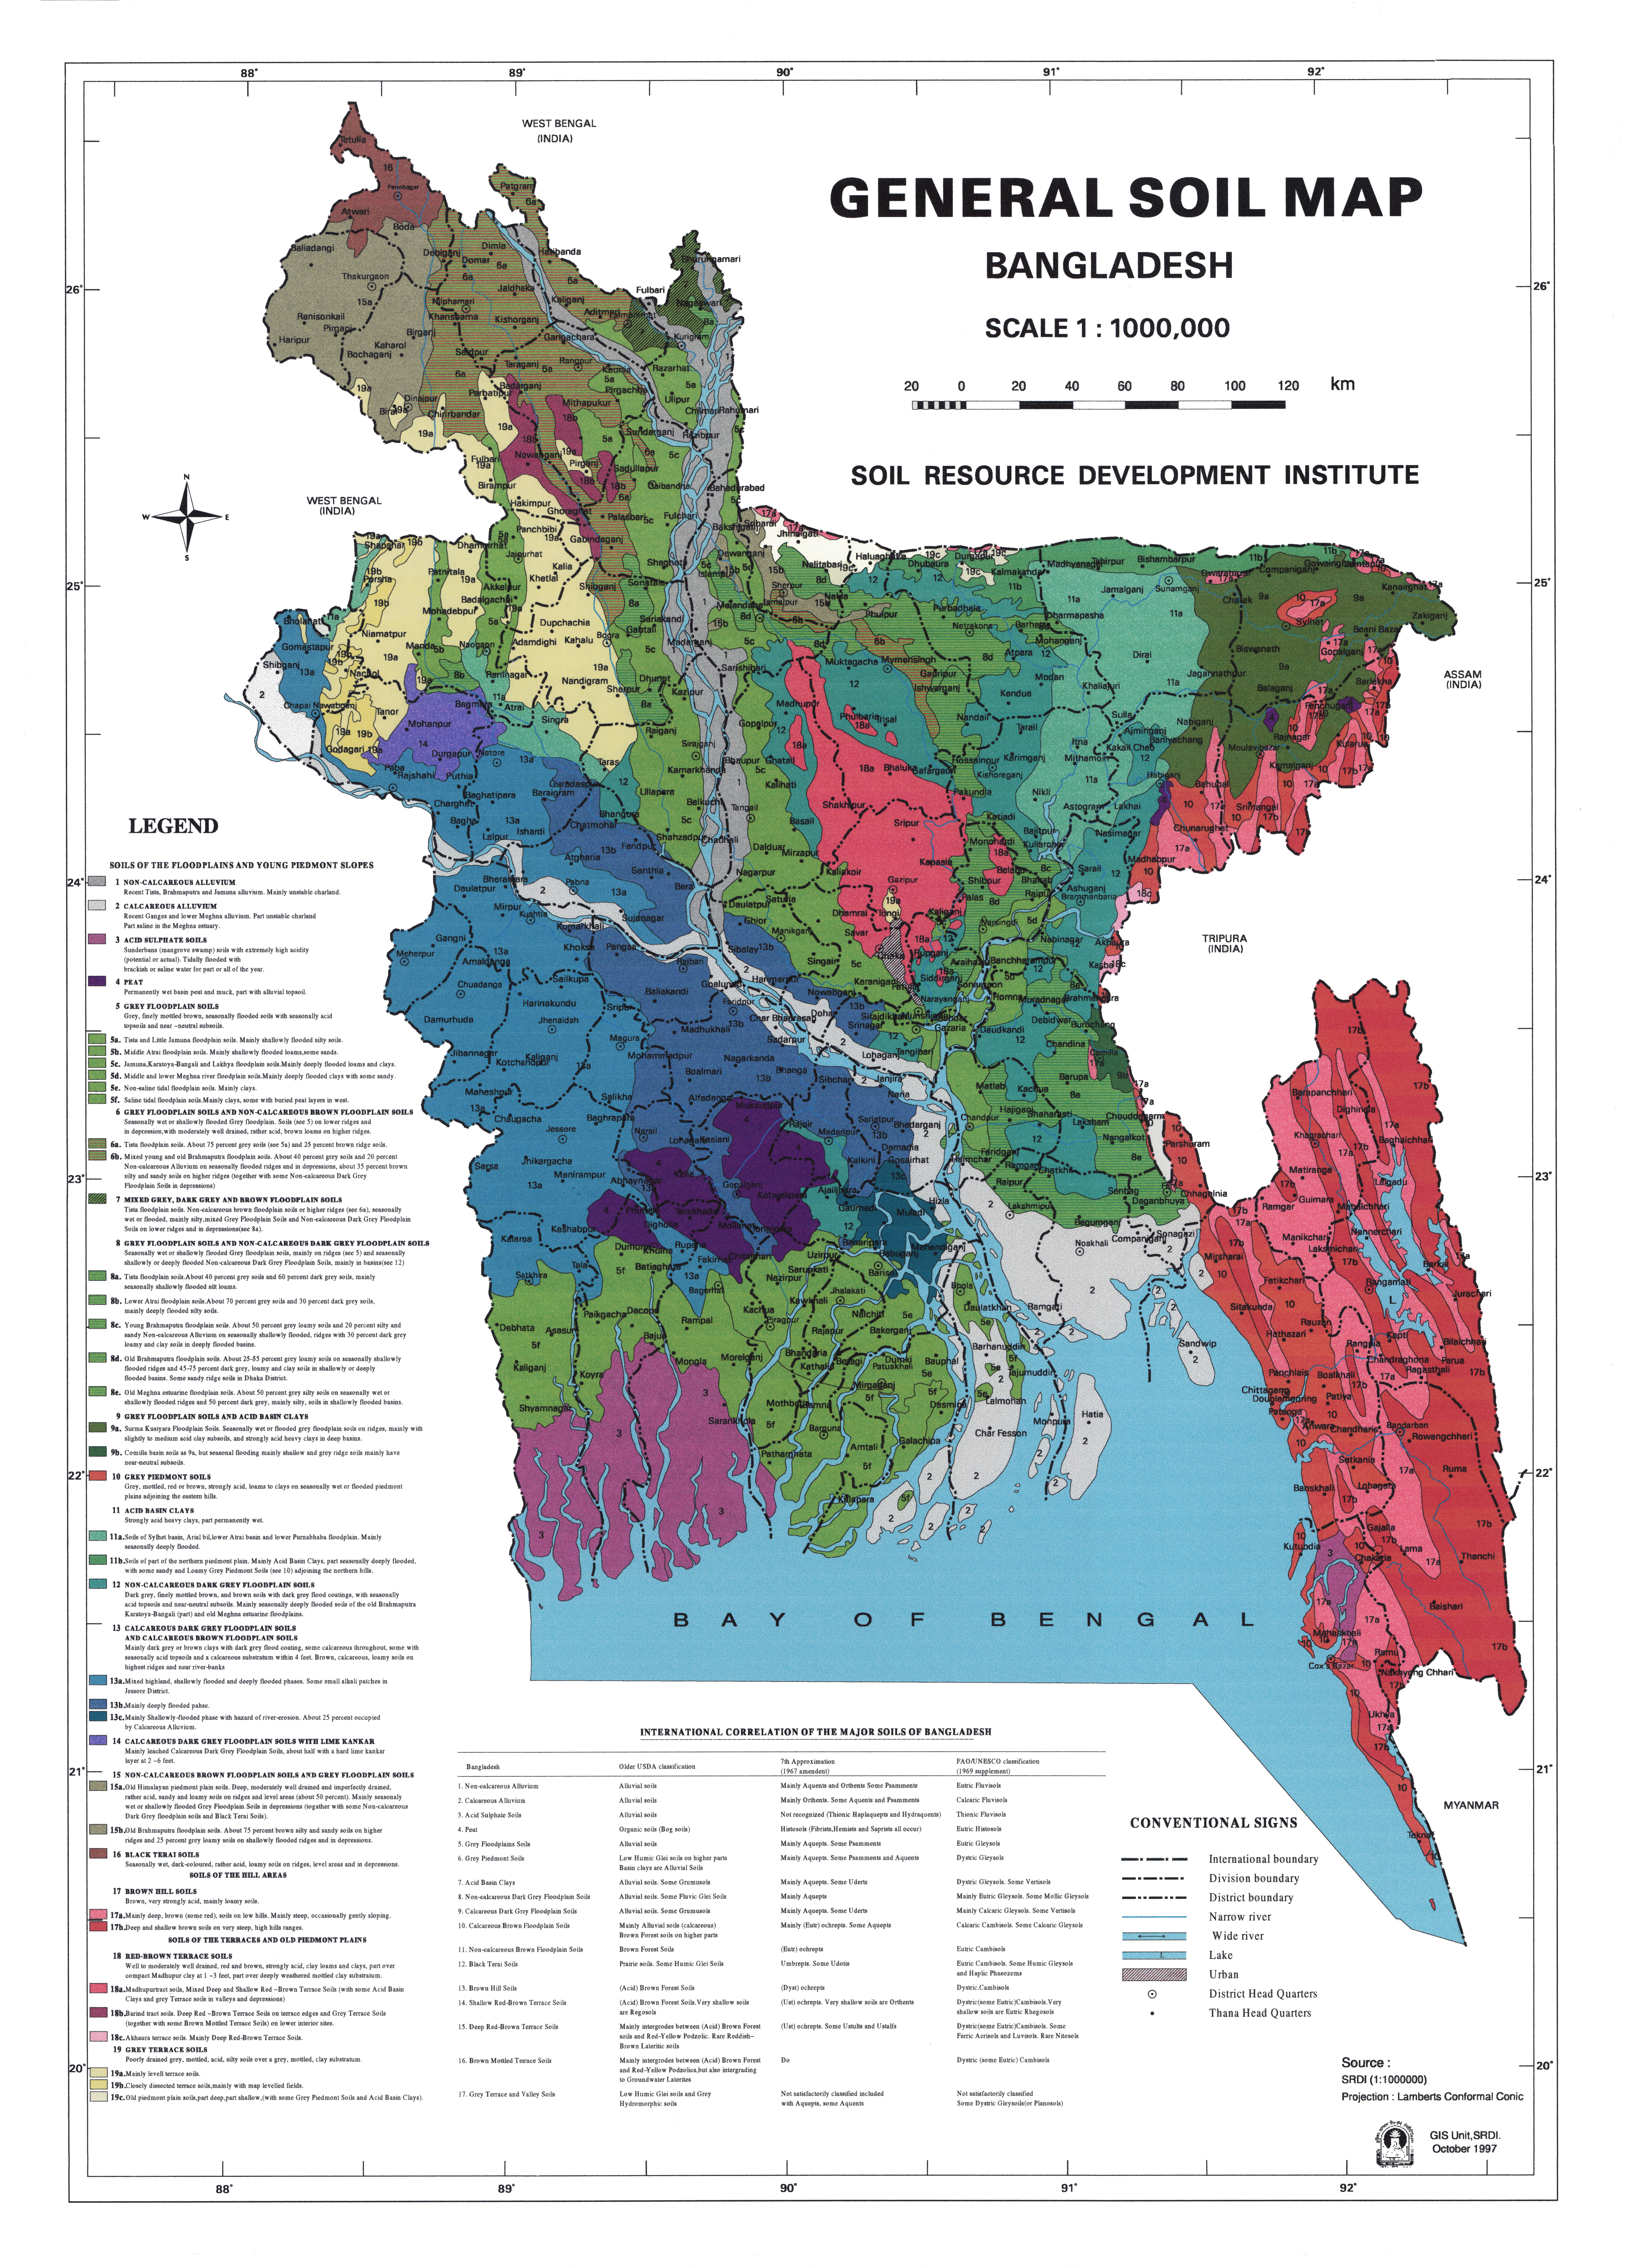 General Soil Map of Bangladesh - ESDAC - European Commission